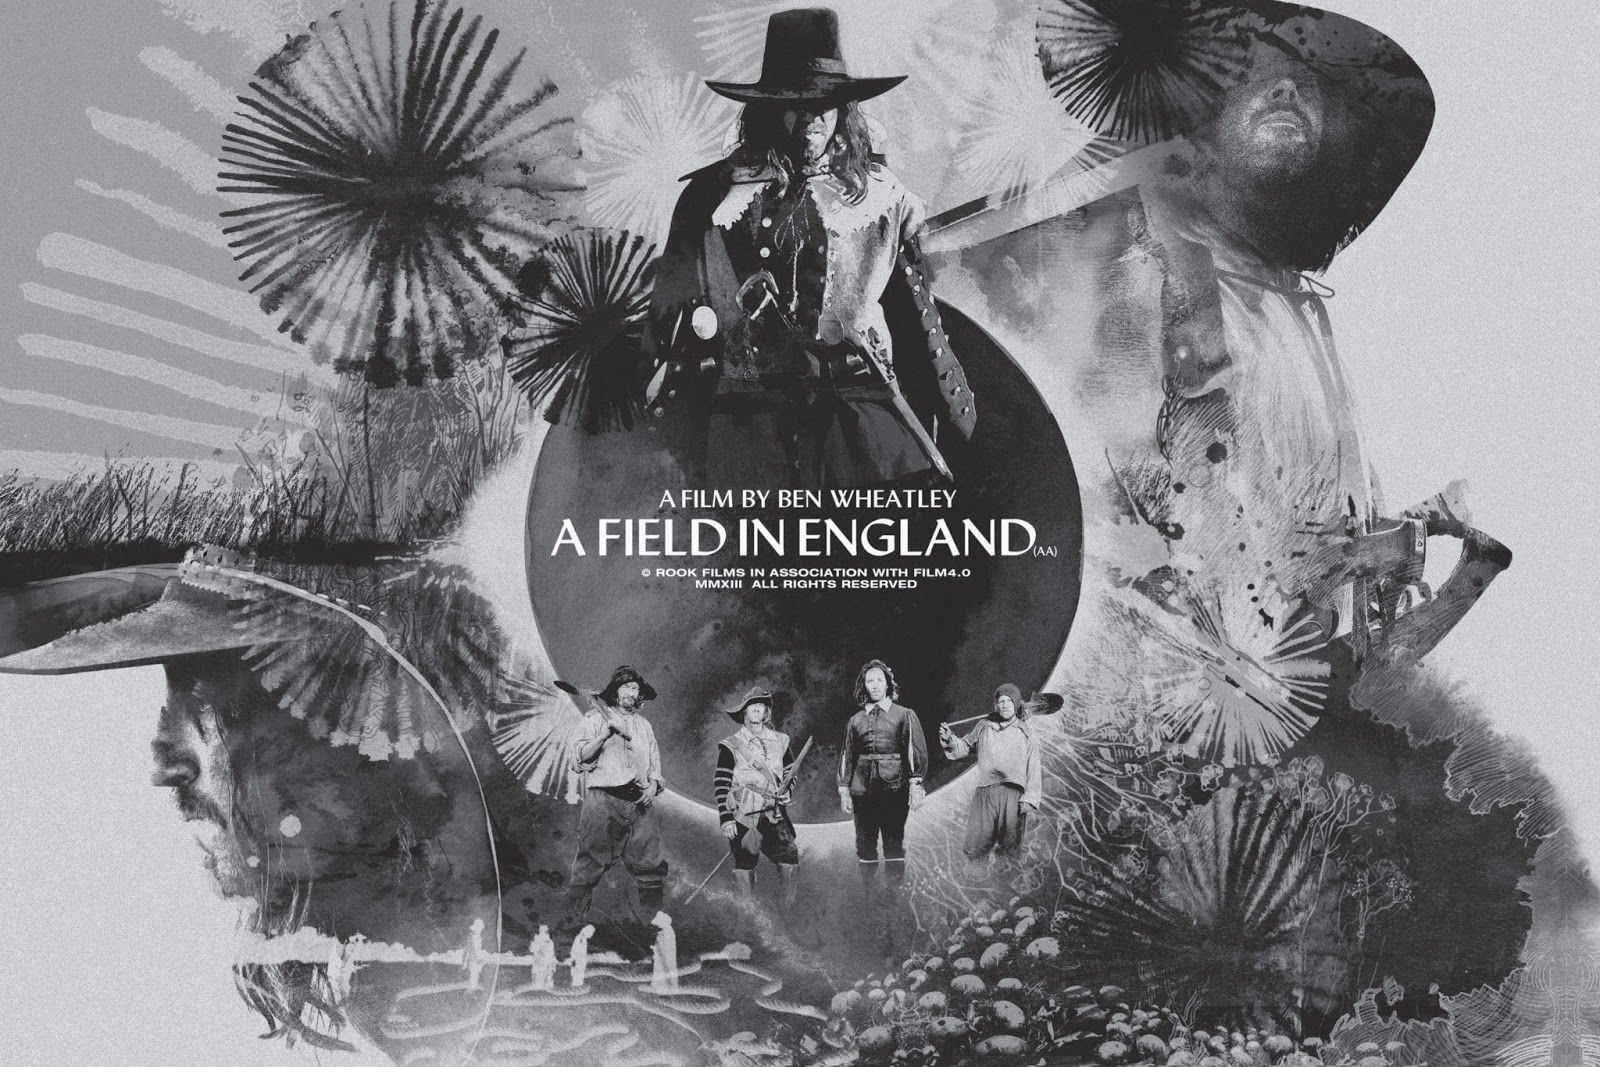 A Field in England review